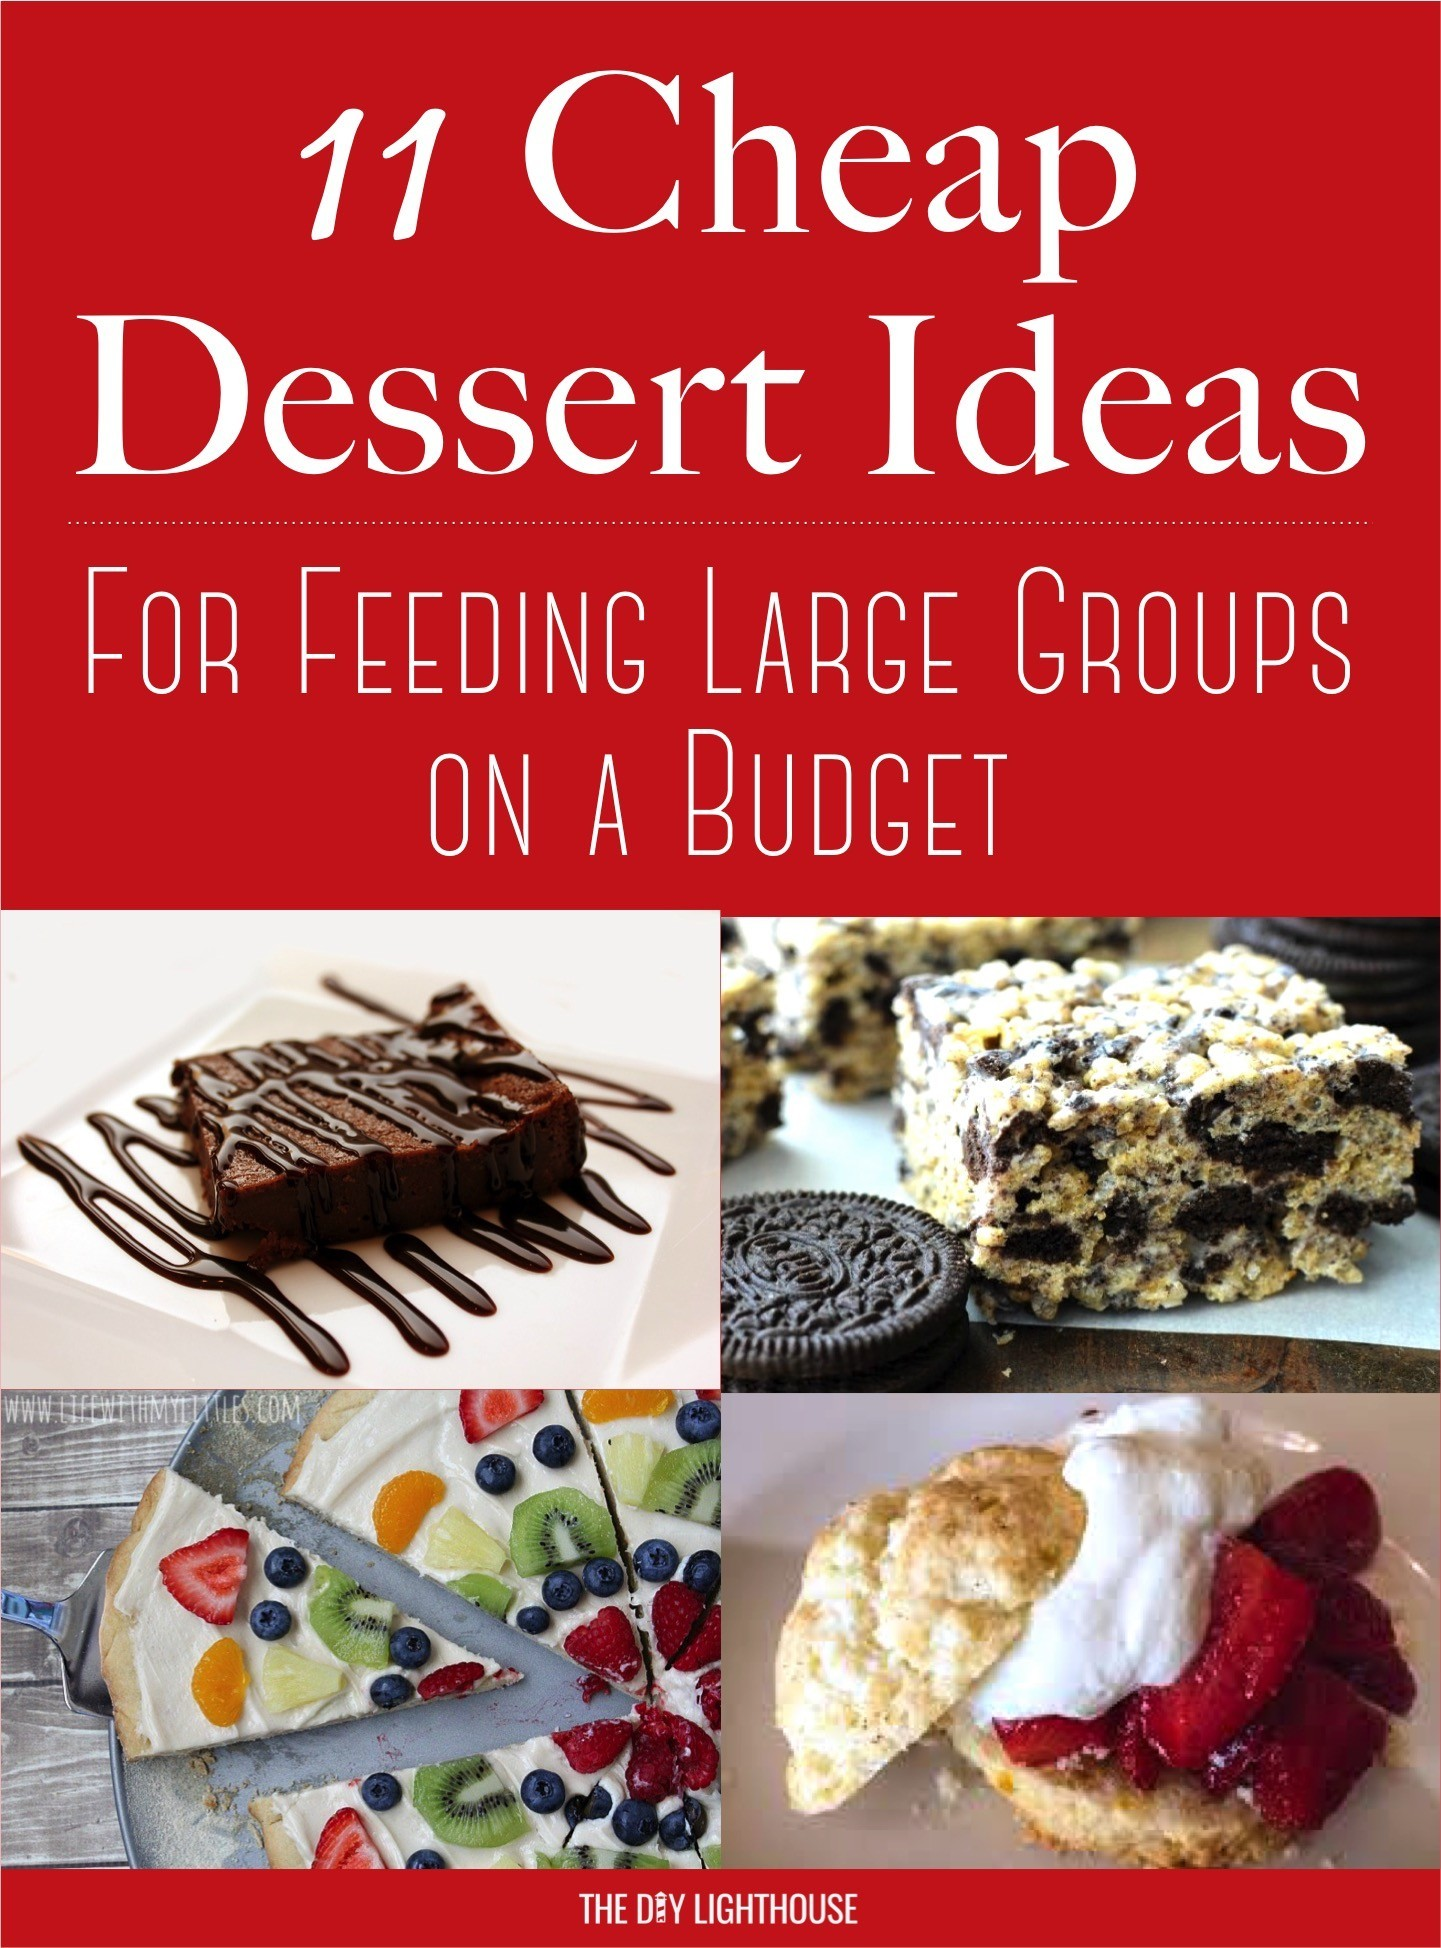 11 Cheap Dessert Ideas For Feeding A Large Group On Budget